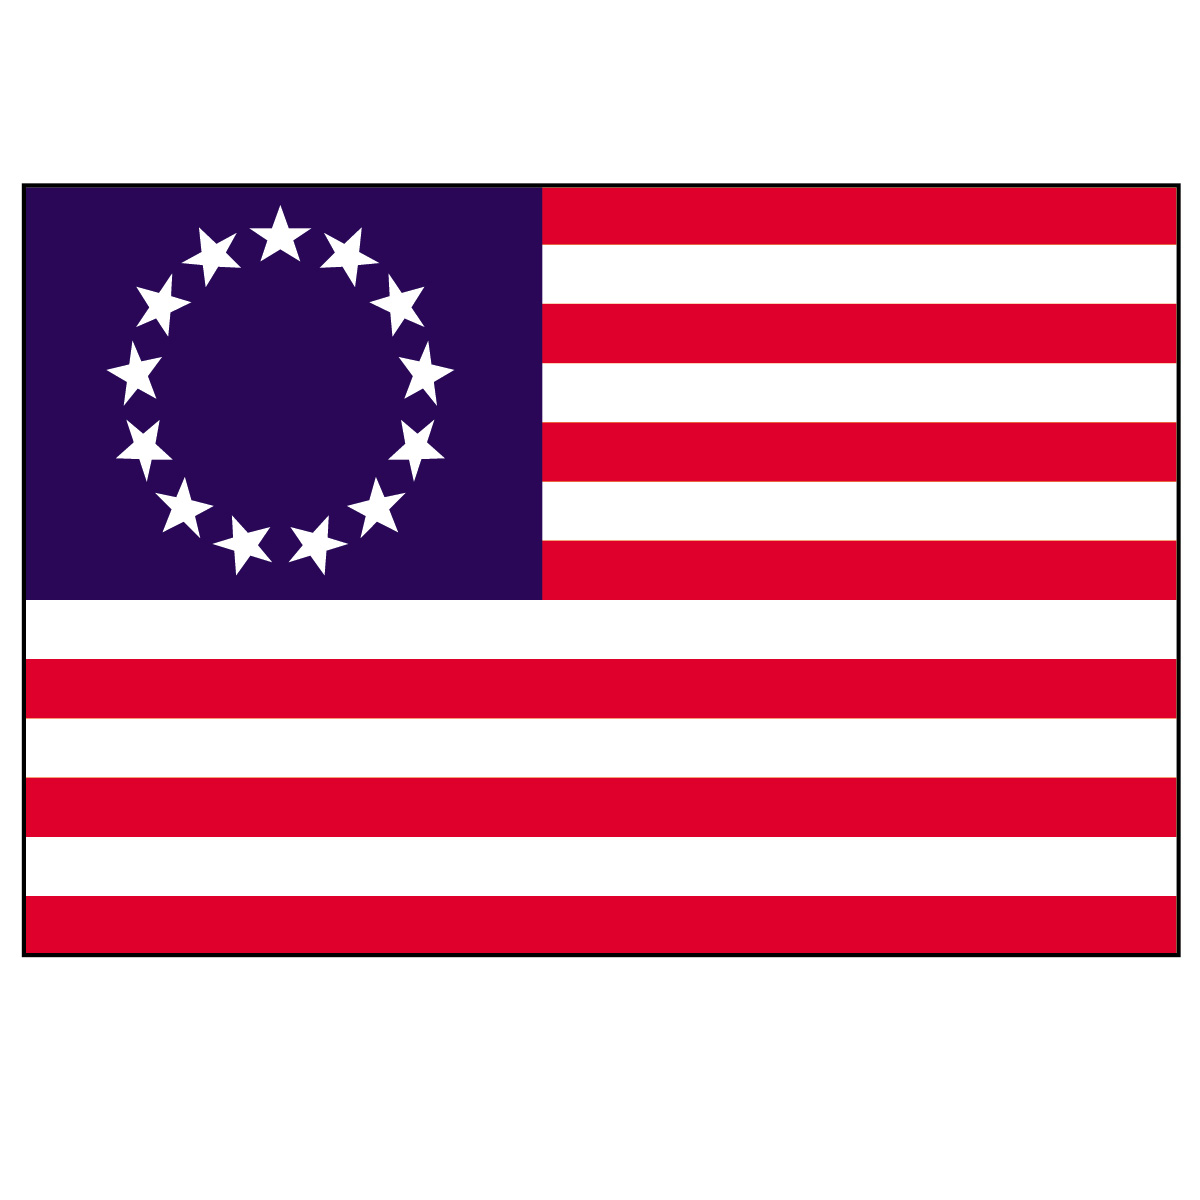 Colony us flag clipart banner free stock Colony us flag clipart - ClipartFest banner free stock